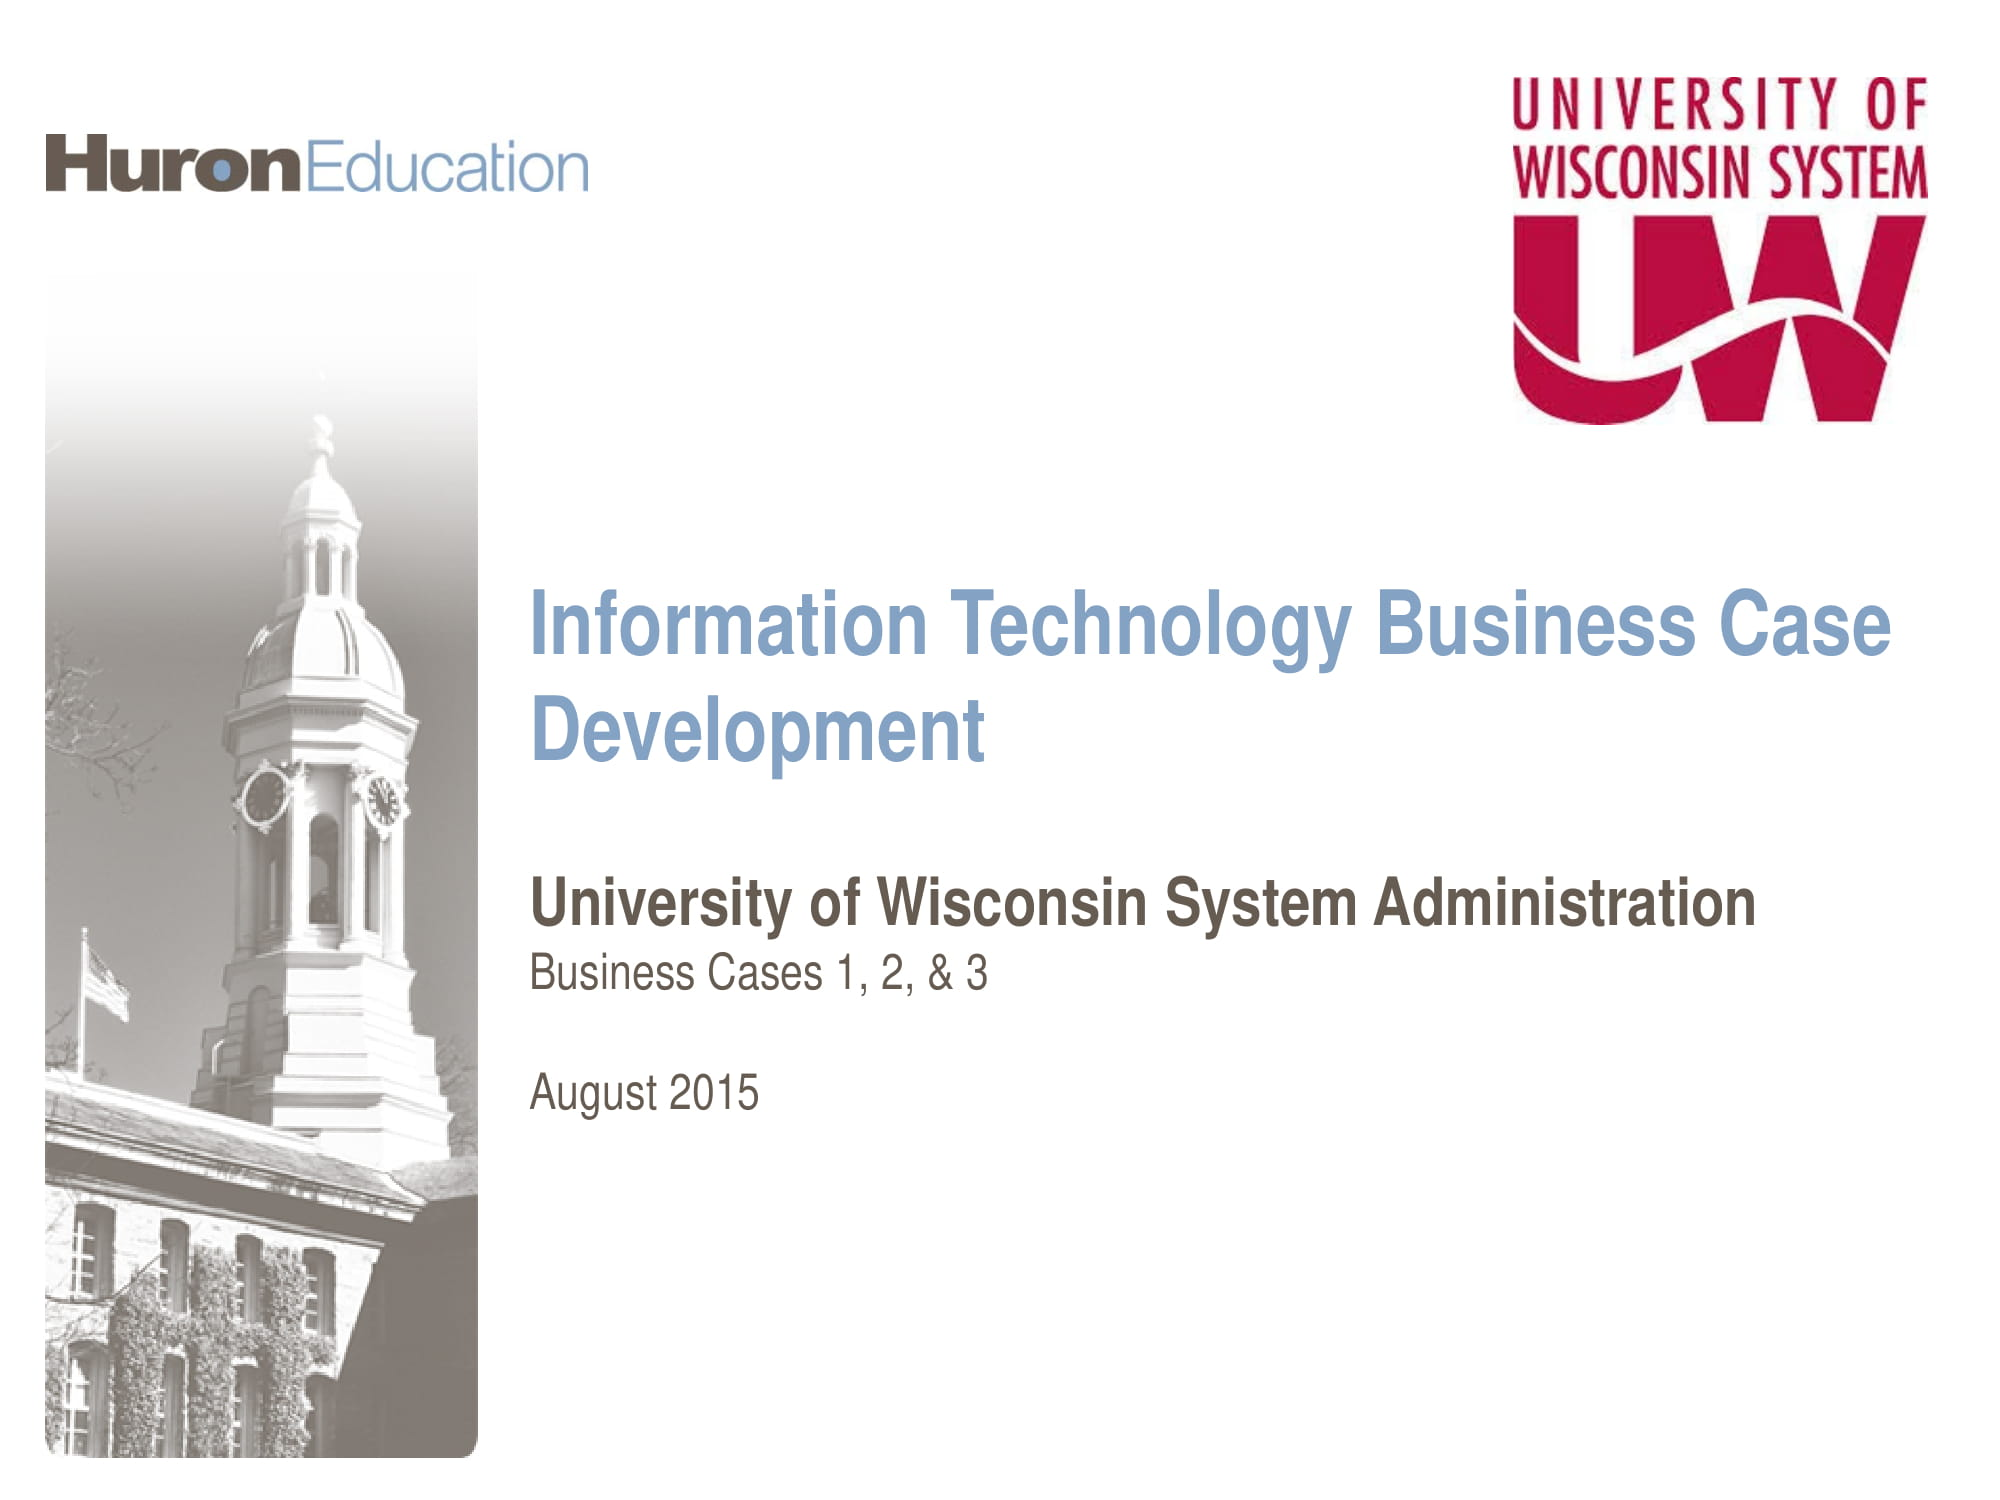 information technology analysis for business case development example 01